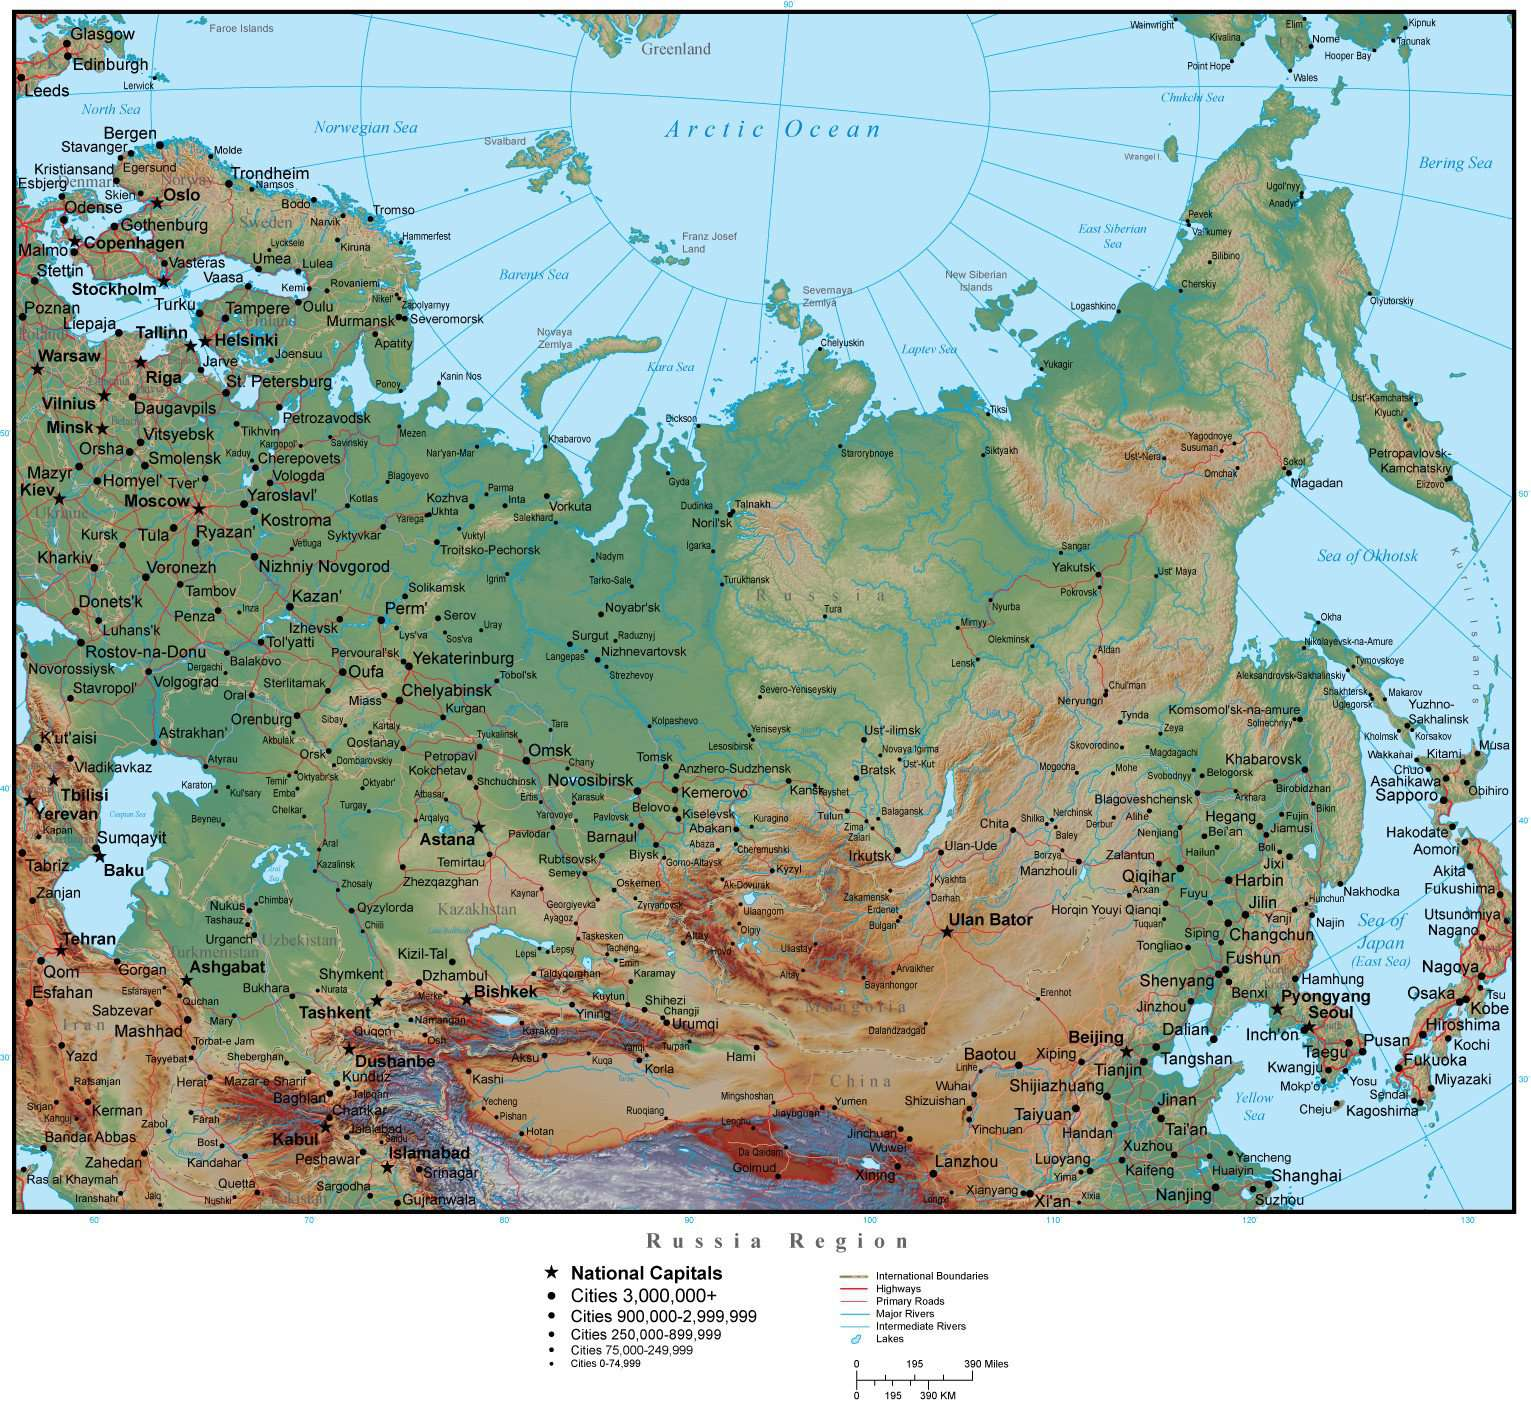 Russia Region Map Plus Terrain with Countries, Capitals, Cities, Roads, on us physical map, us journey map, us frontier map, us heat map, us territorial sea map, us infrastructure map, us tundra map, us explorer map, terrain features on map, us hydrology map, us terrain park council, us tree cover map, us environment map, us culture map, us santa fe map, us avalanche map, us cloud cover map, us population density map, us snowfall map, us climate map,